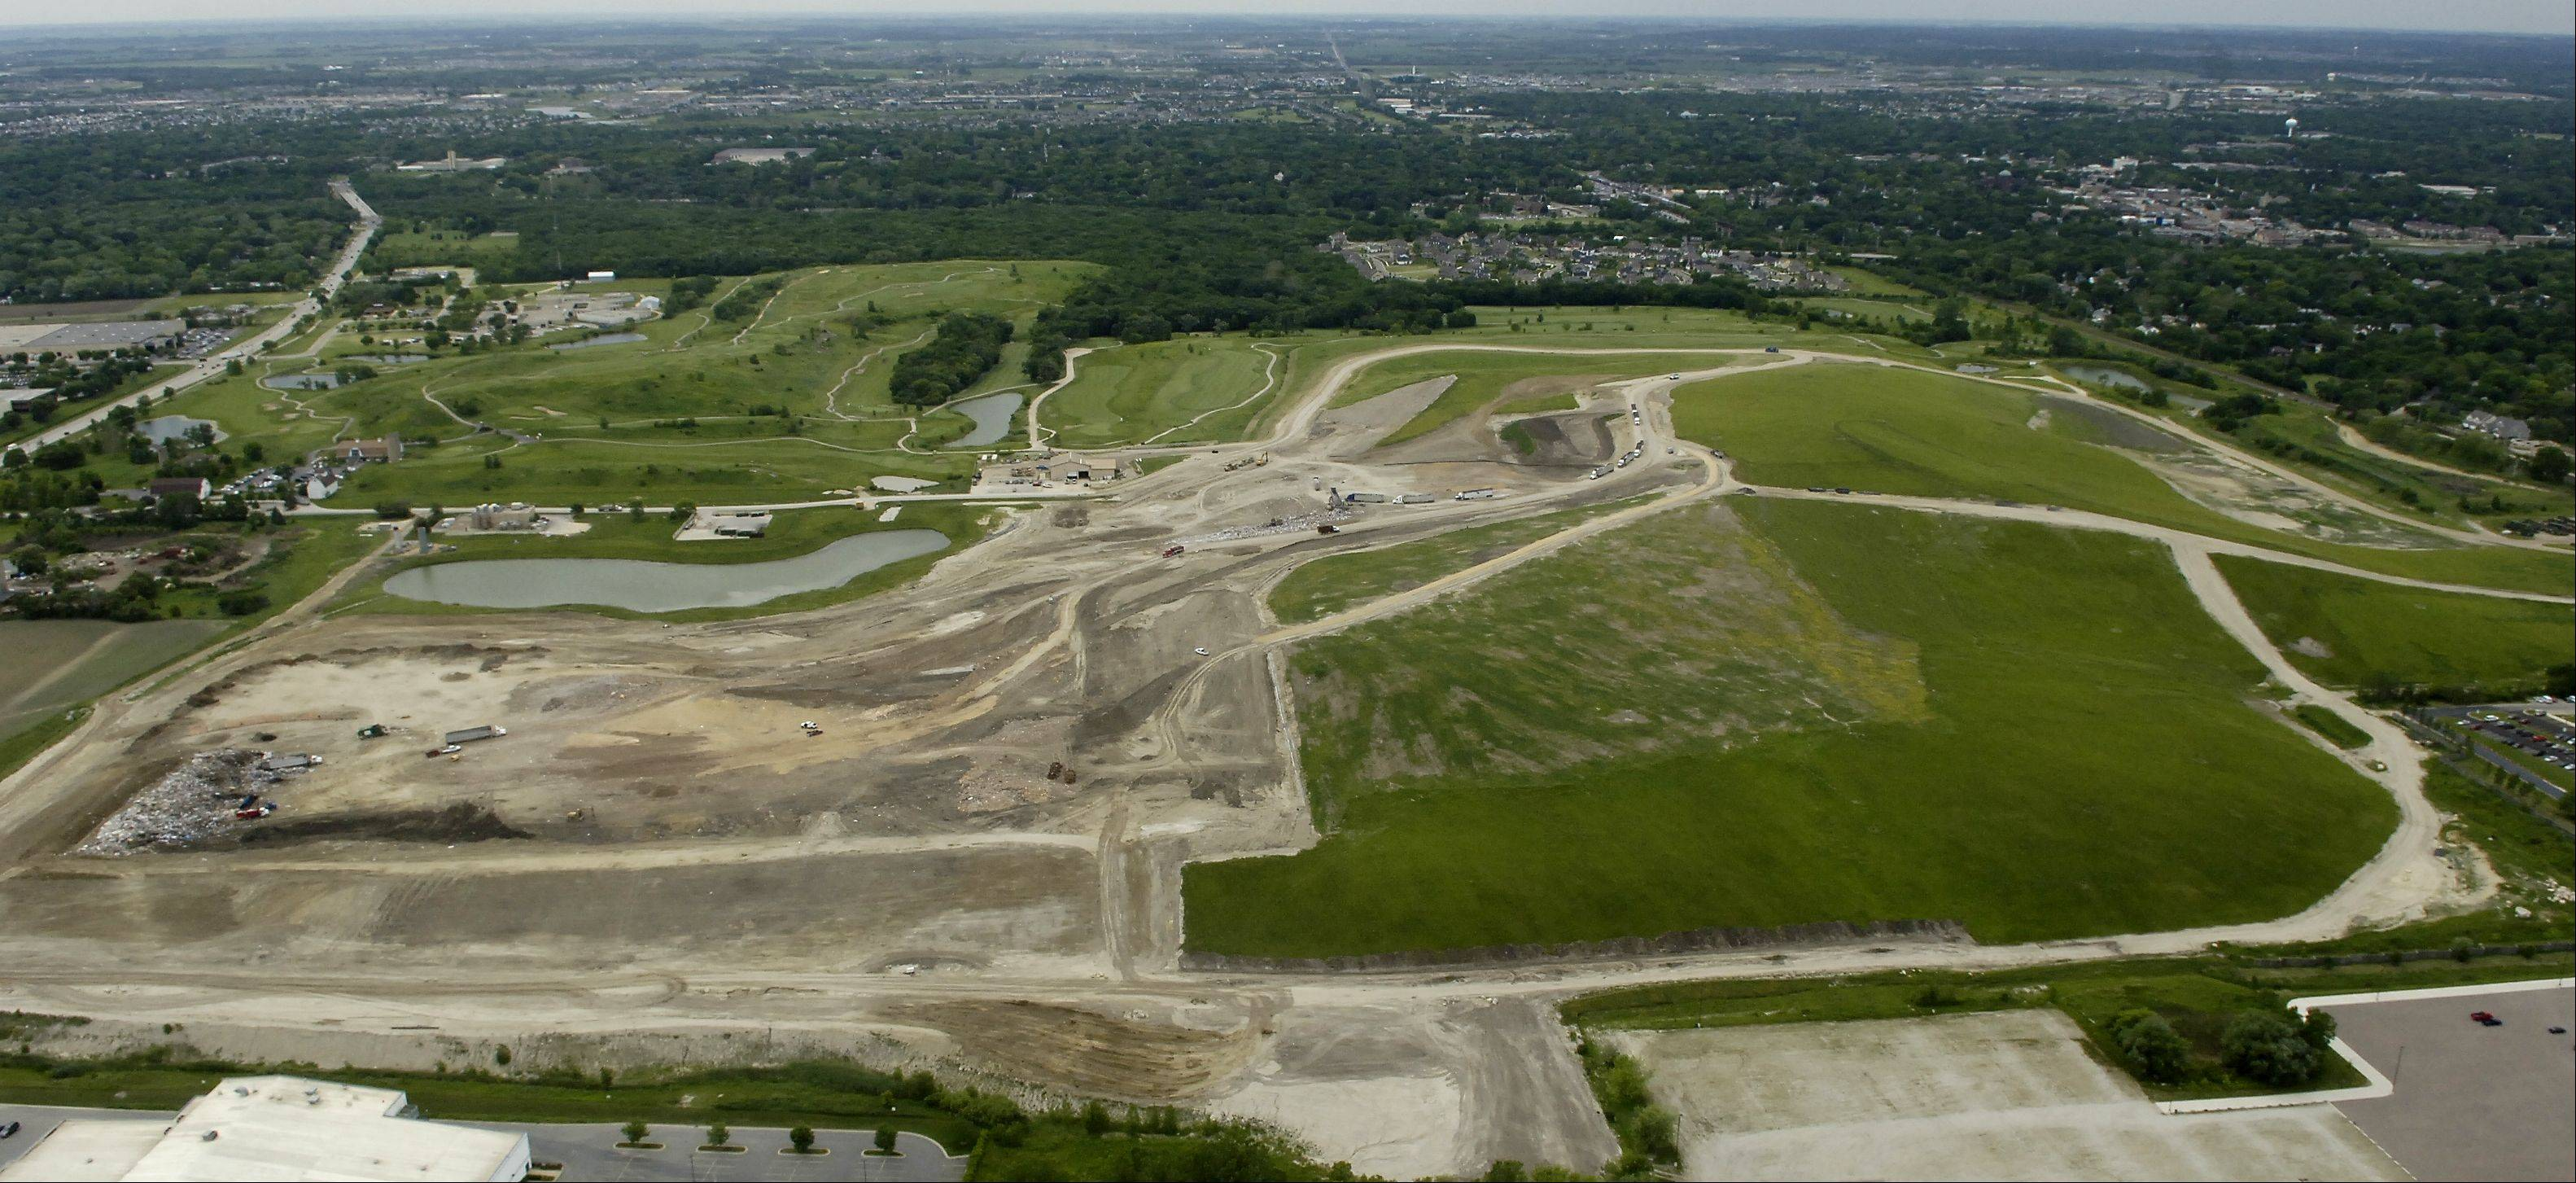 Kane County officials are starting to put money behind significant recreational changes to the former Settlers Hill landfill in Geneva.